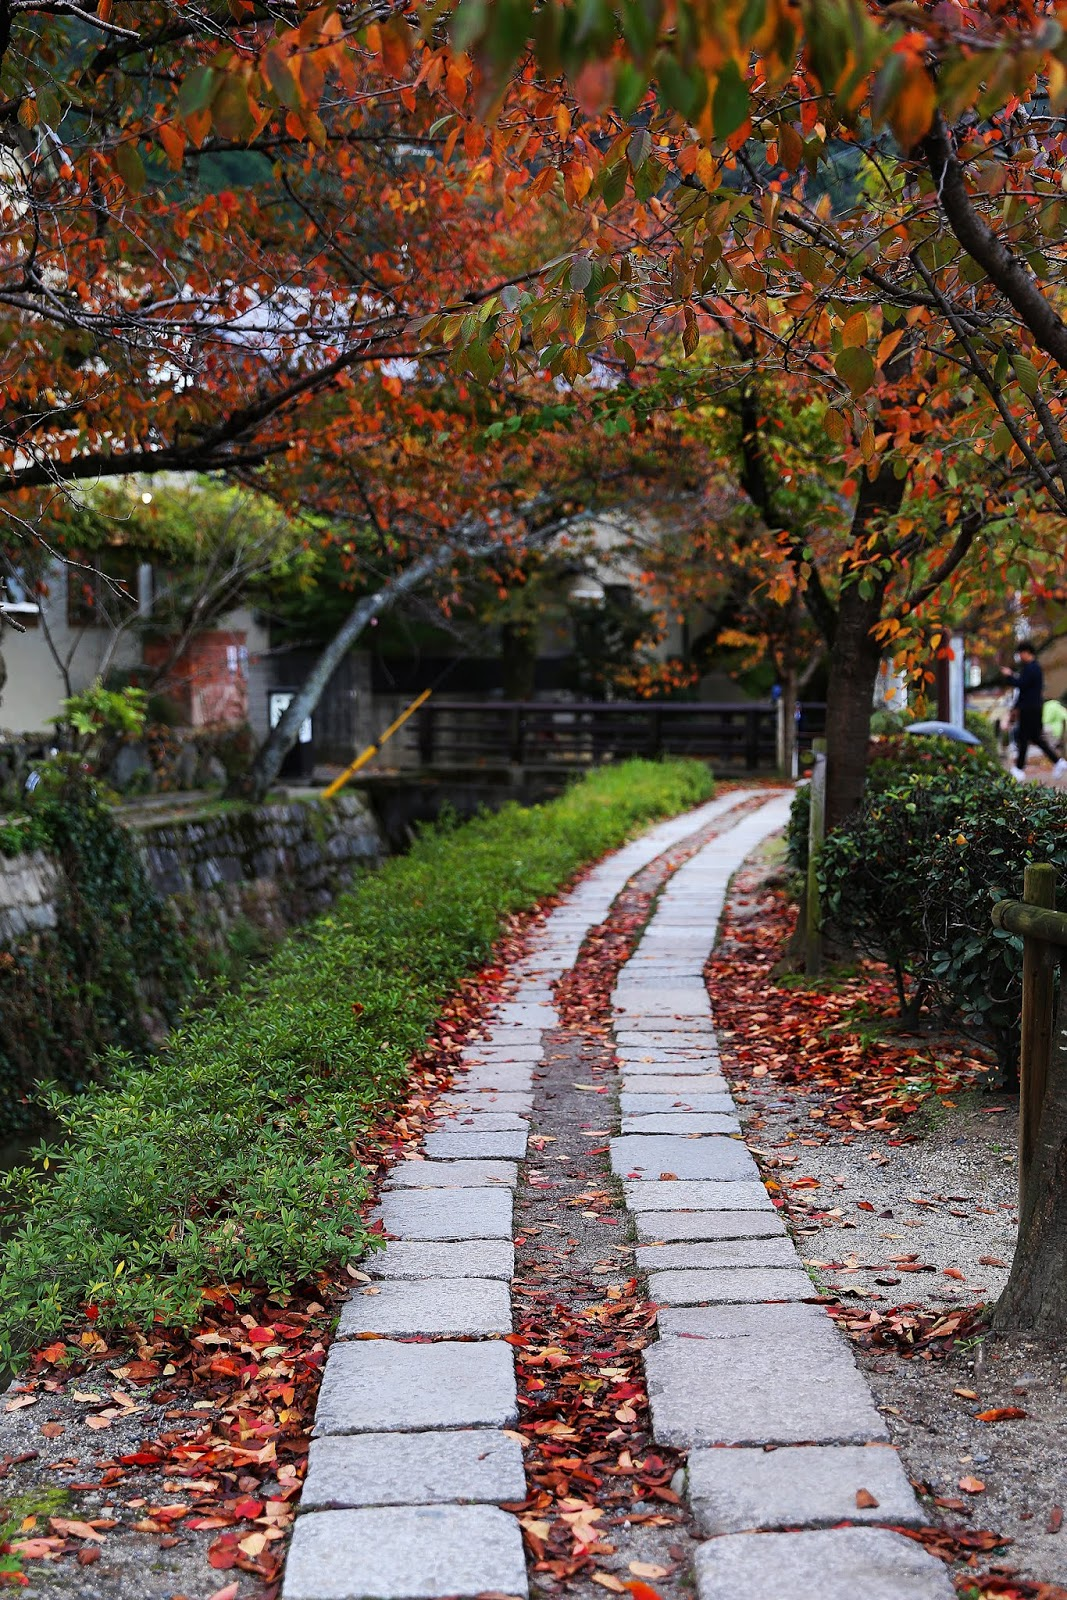 The Top 10 Things to See & Do in Kyoto, Japan by Posh, Broke, & Bored